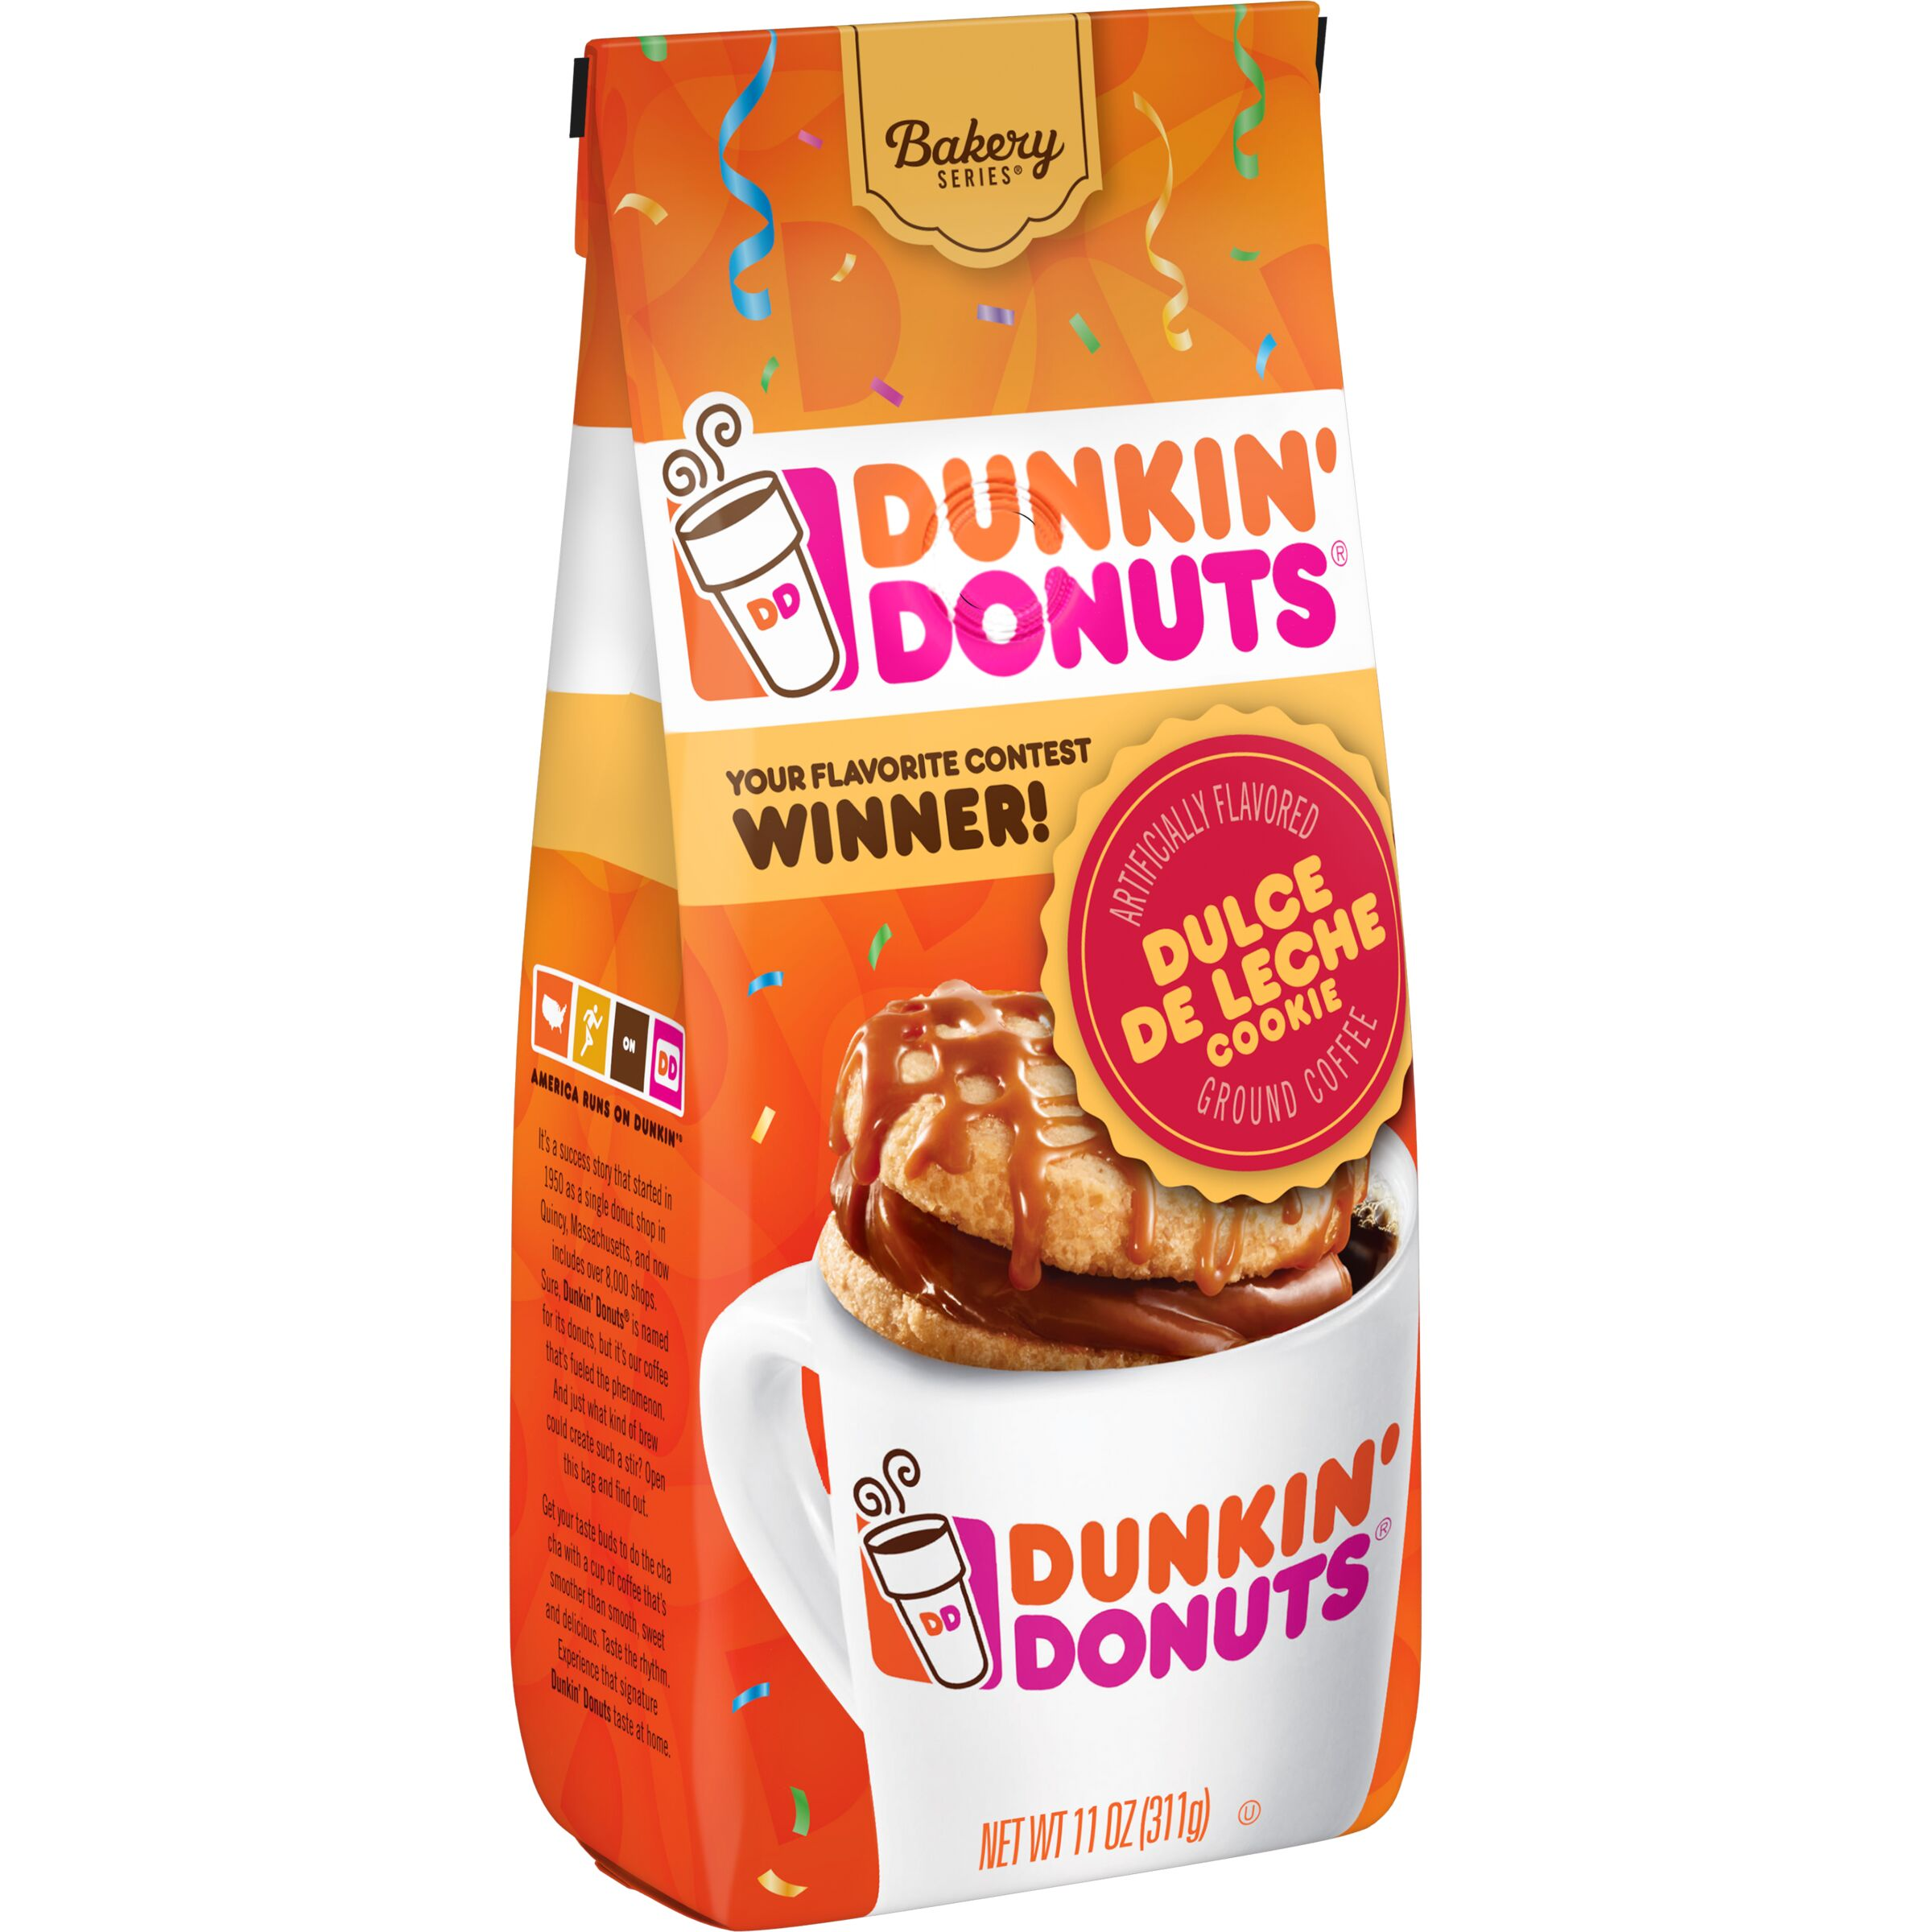 Dunkin' Donuts Bakery Series Dulce De Leche Cookie Flavored Coffee